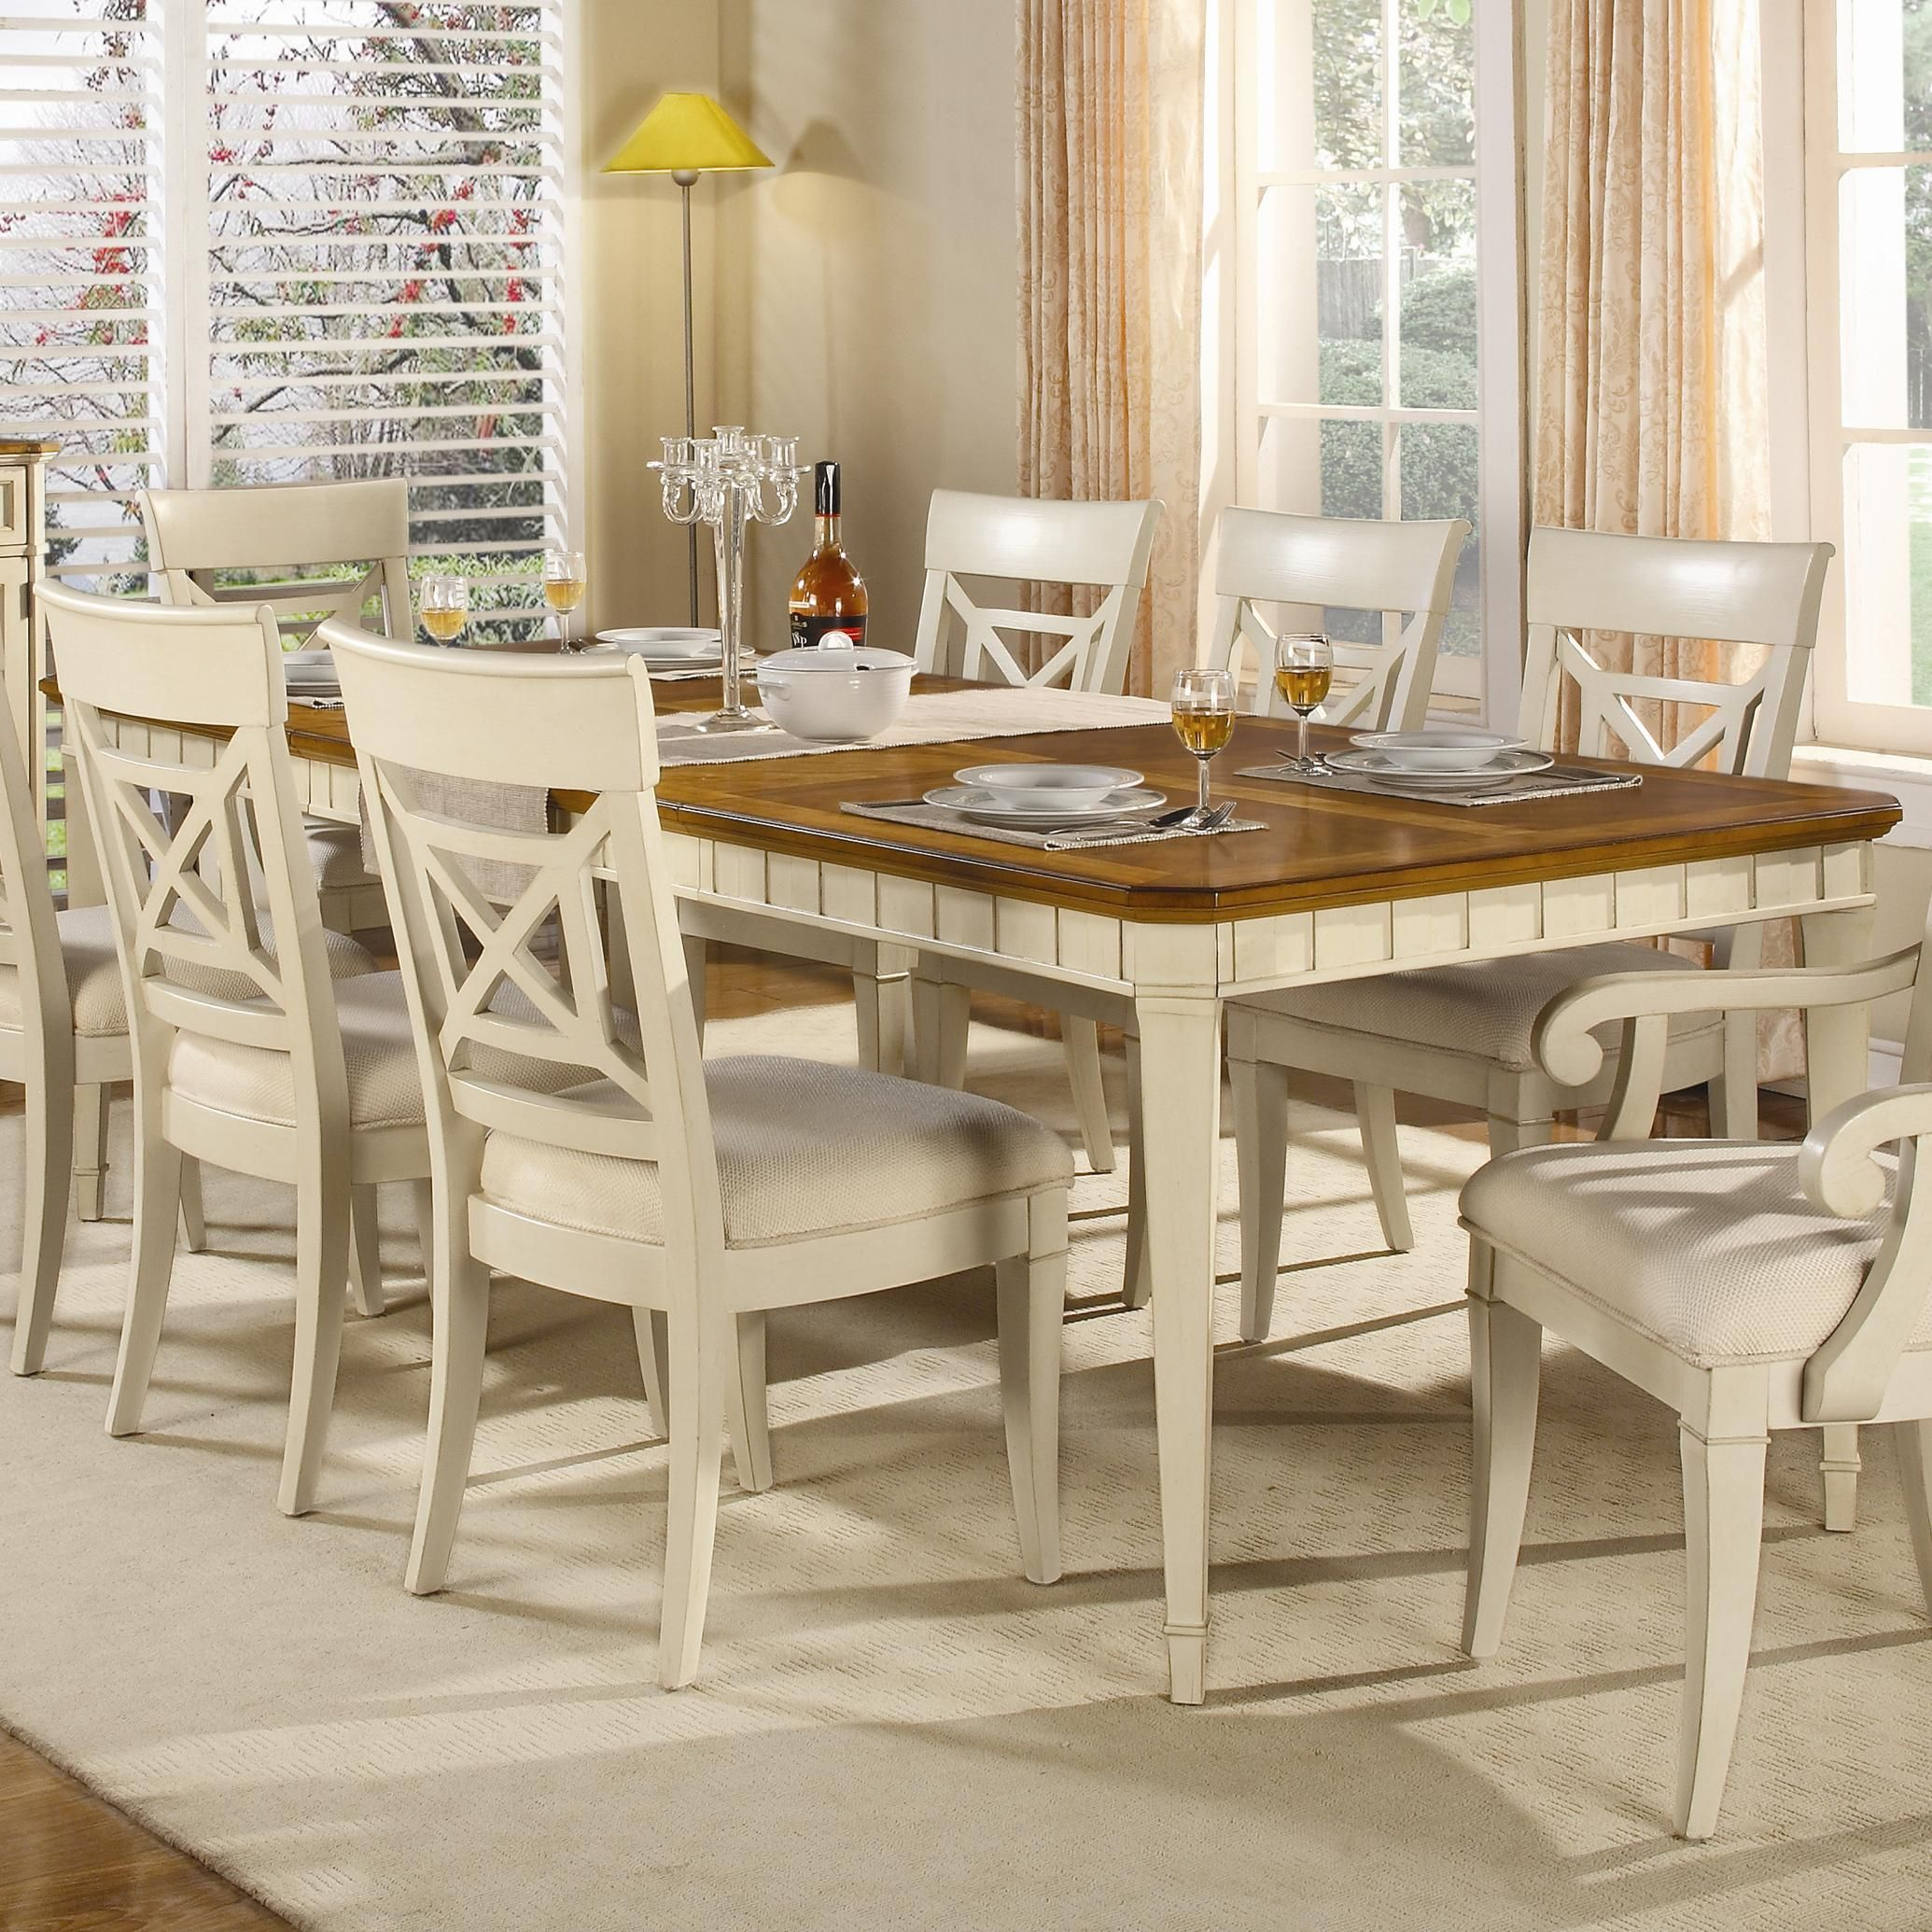 French Country Dining Room Furniture, Wynwood Dining Room Sets